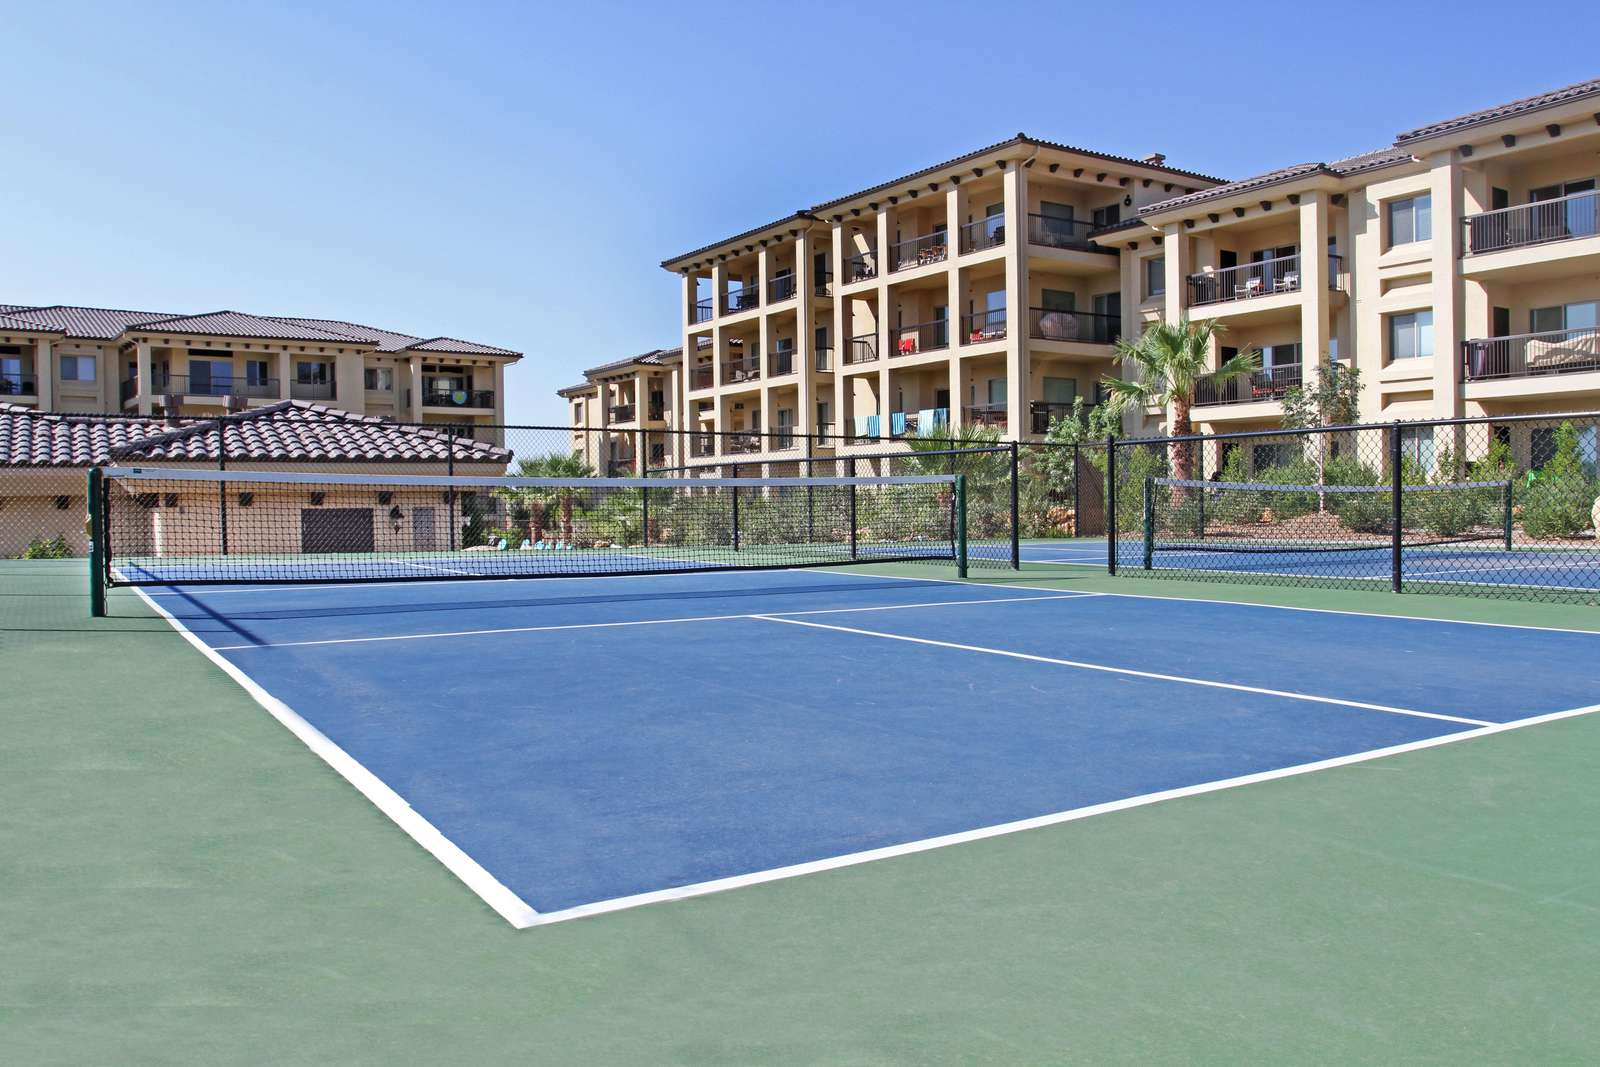 Estancia Pickle Ball Courts